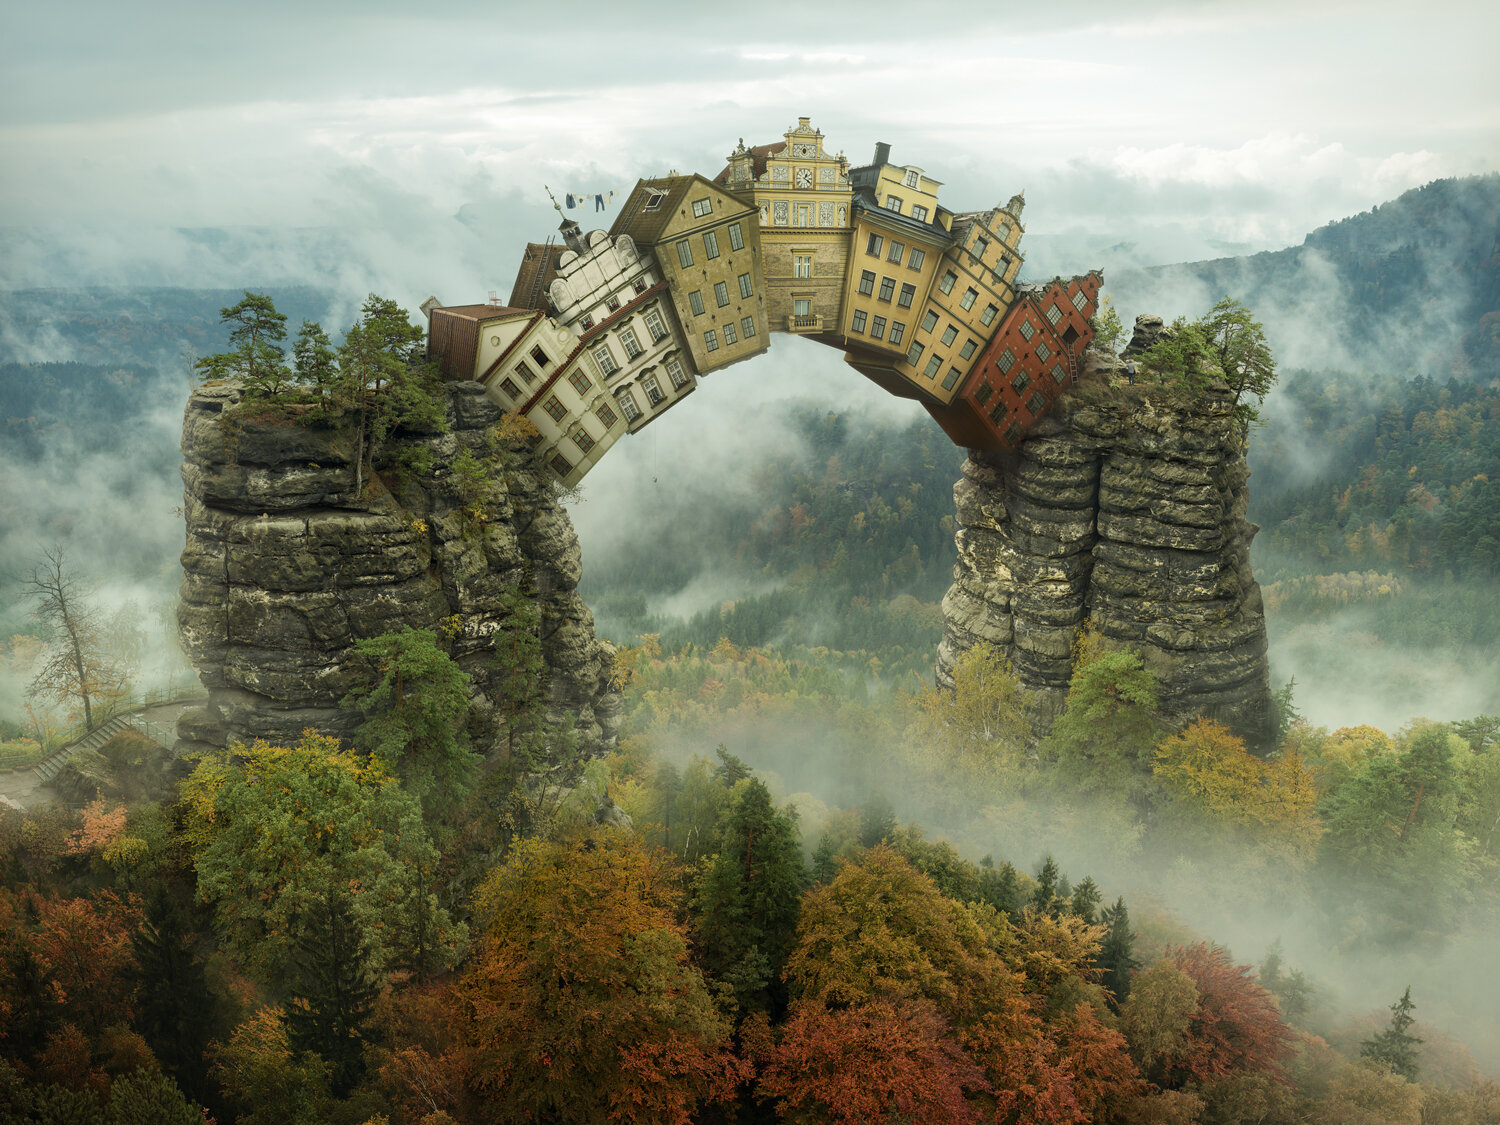 Self Supporting by Erik Johansson